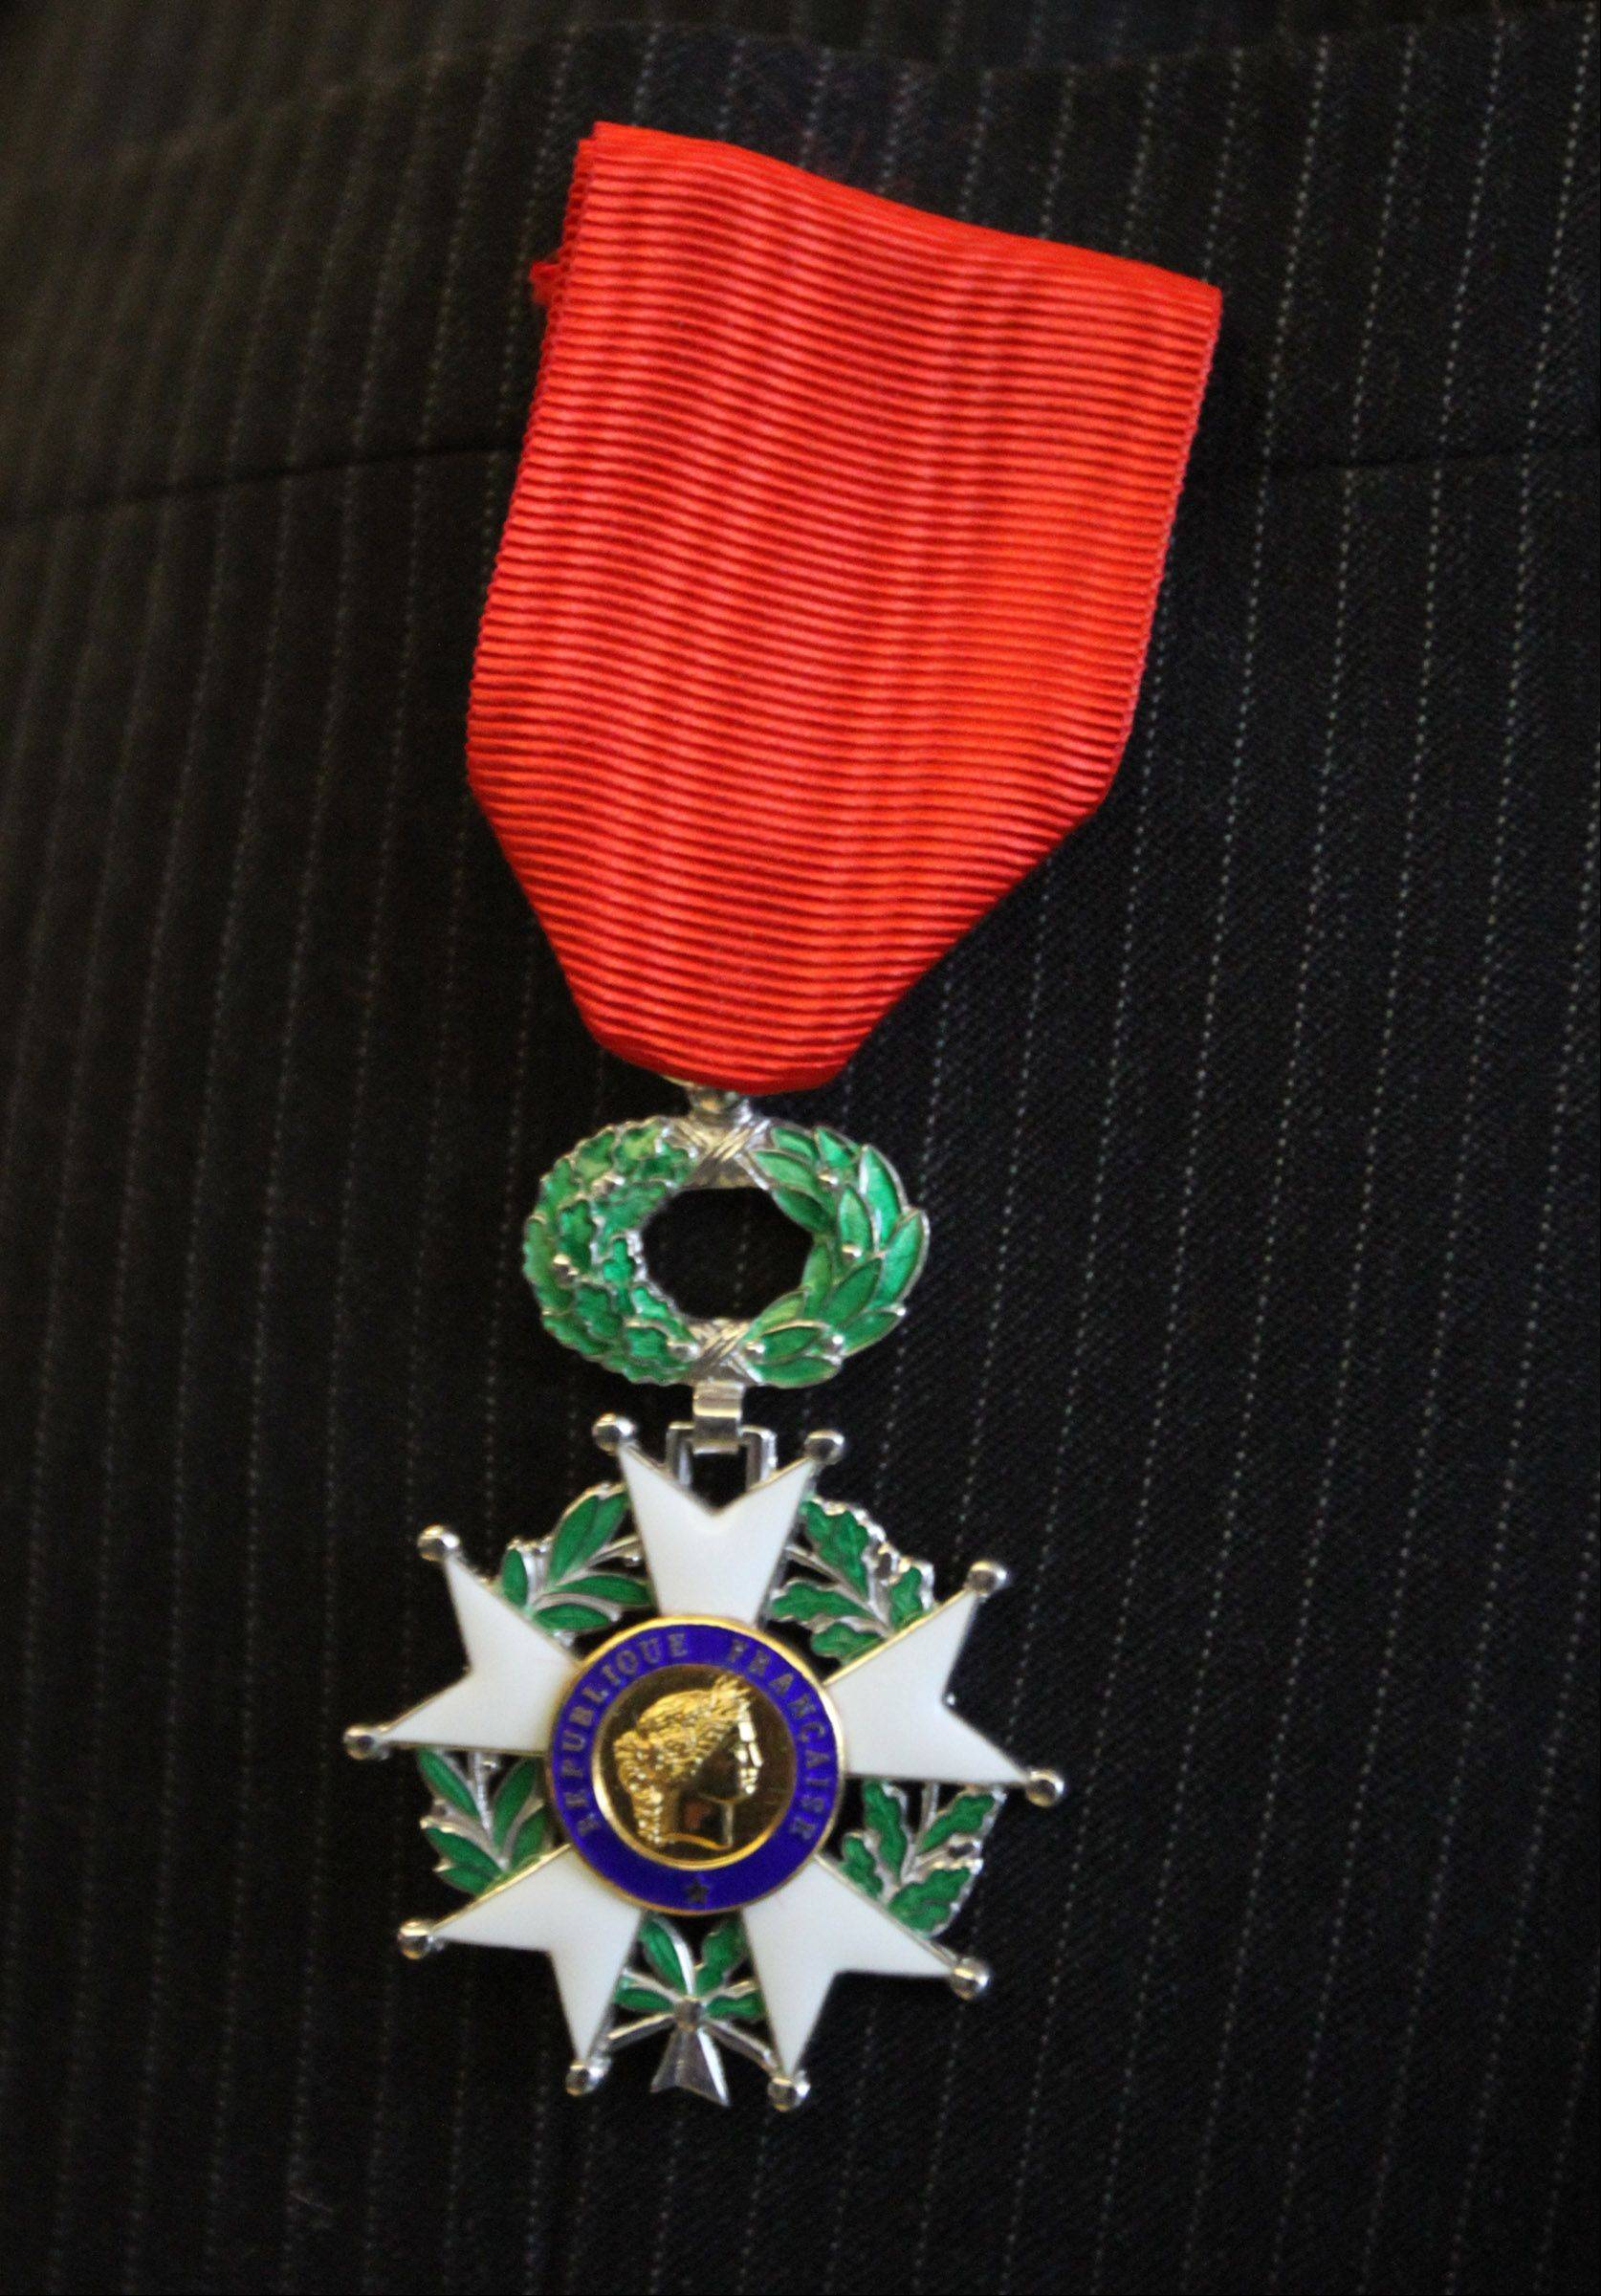 This is the French Legion of Honor medal.